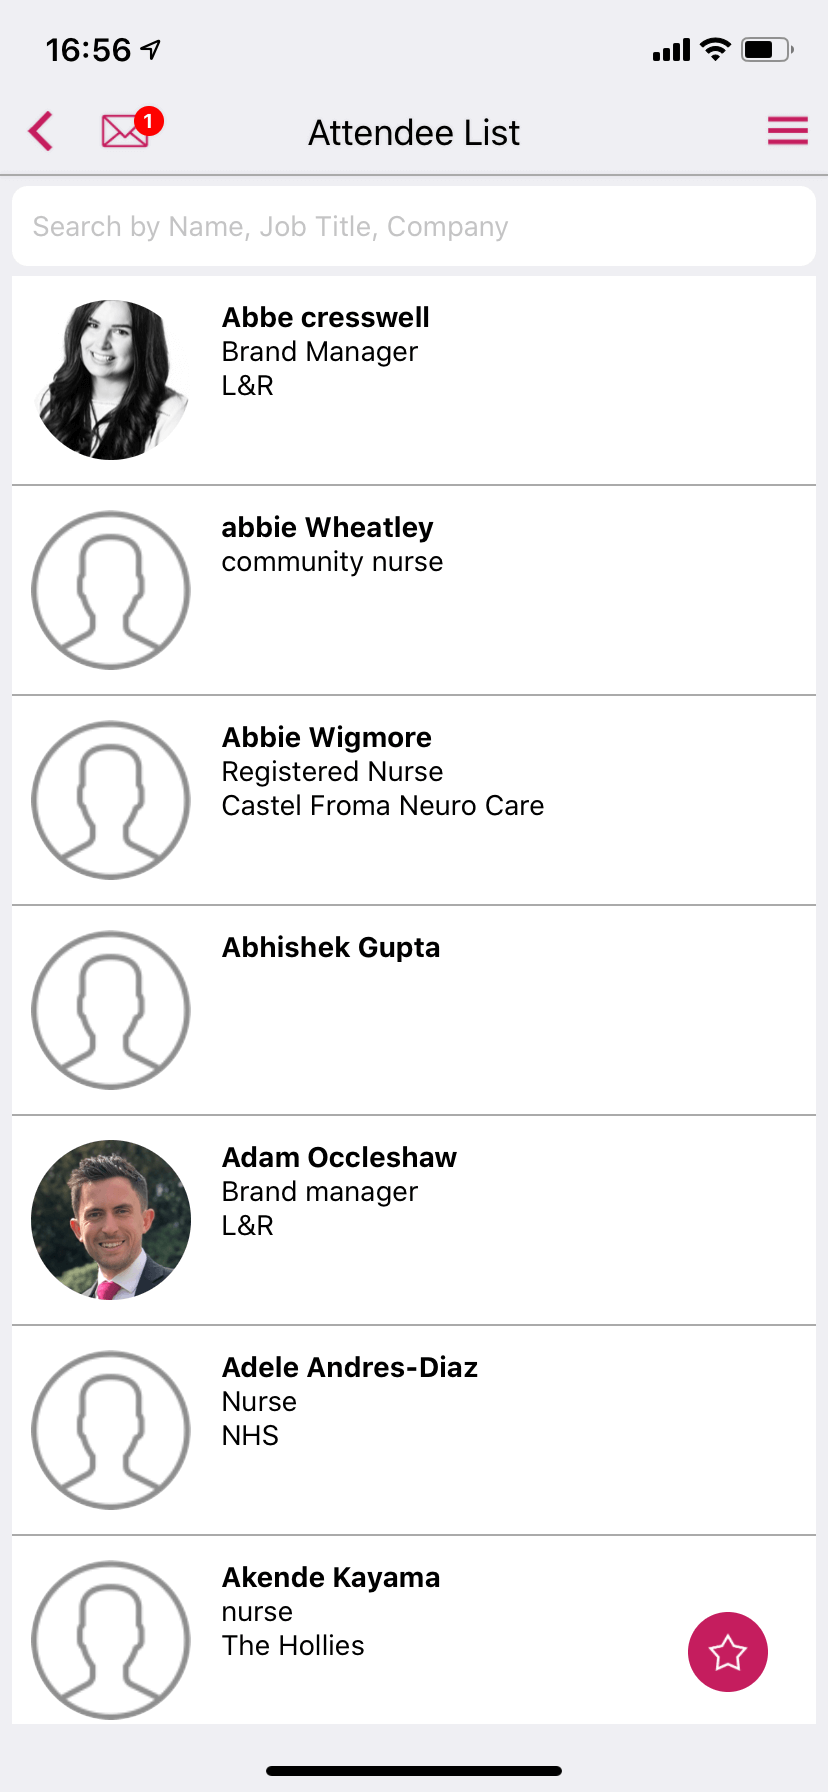 Attendees list in an event app by VenuIQ